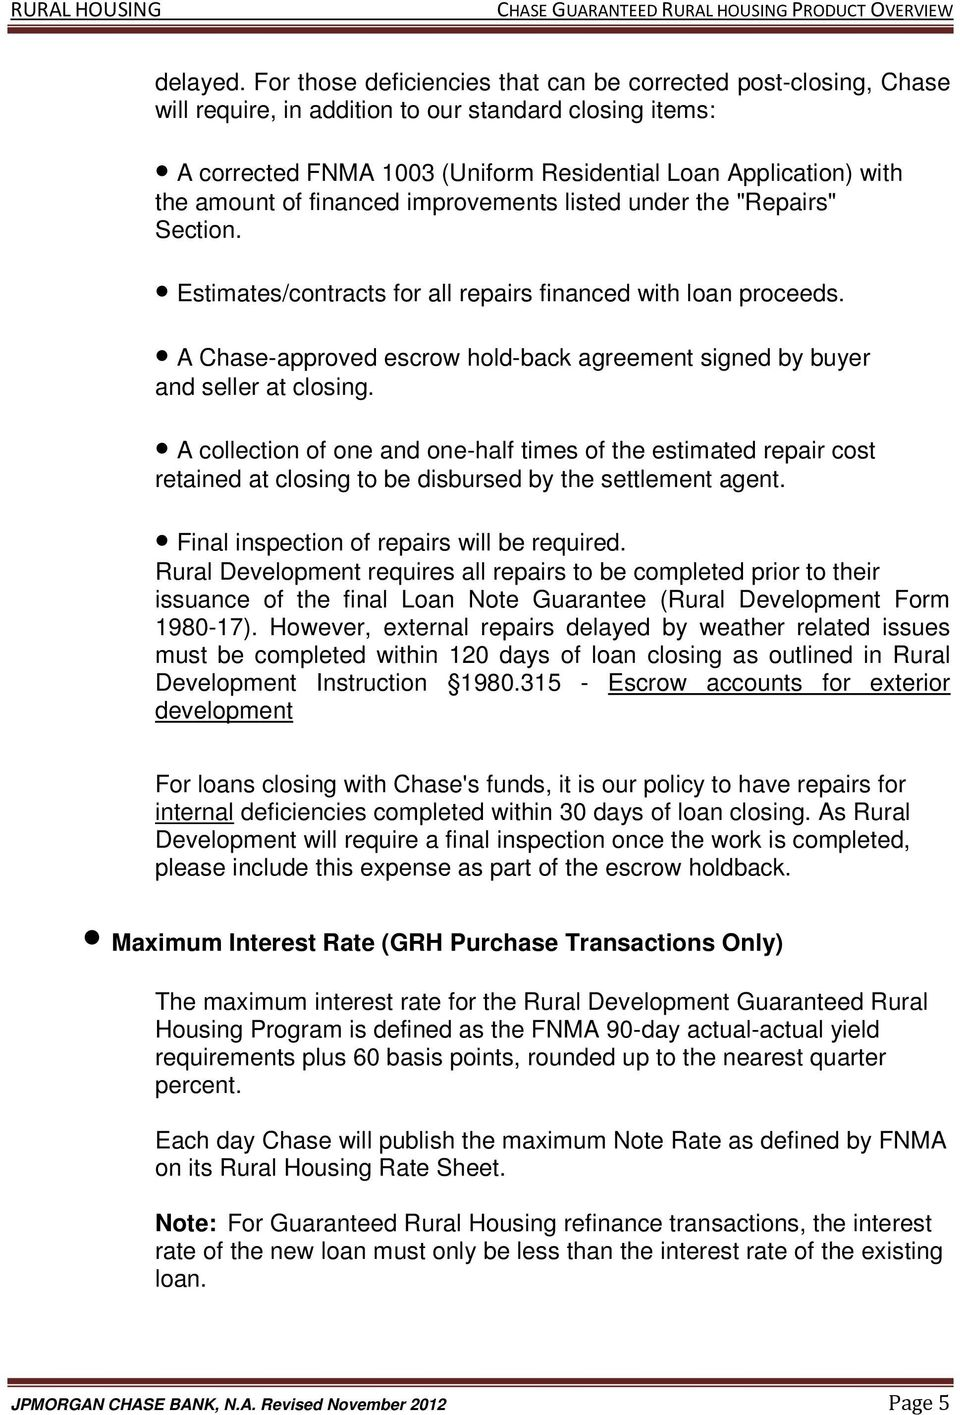 The Chase Guaranteed Rural Housing Refinance Program Features Pdf